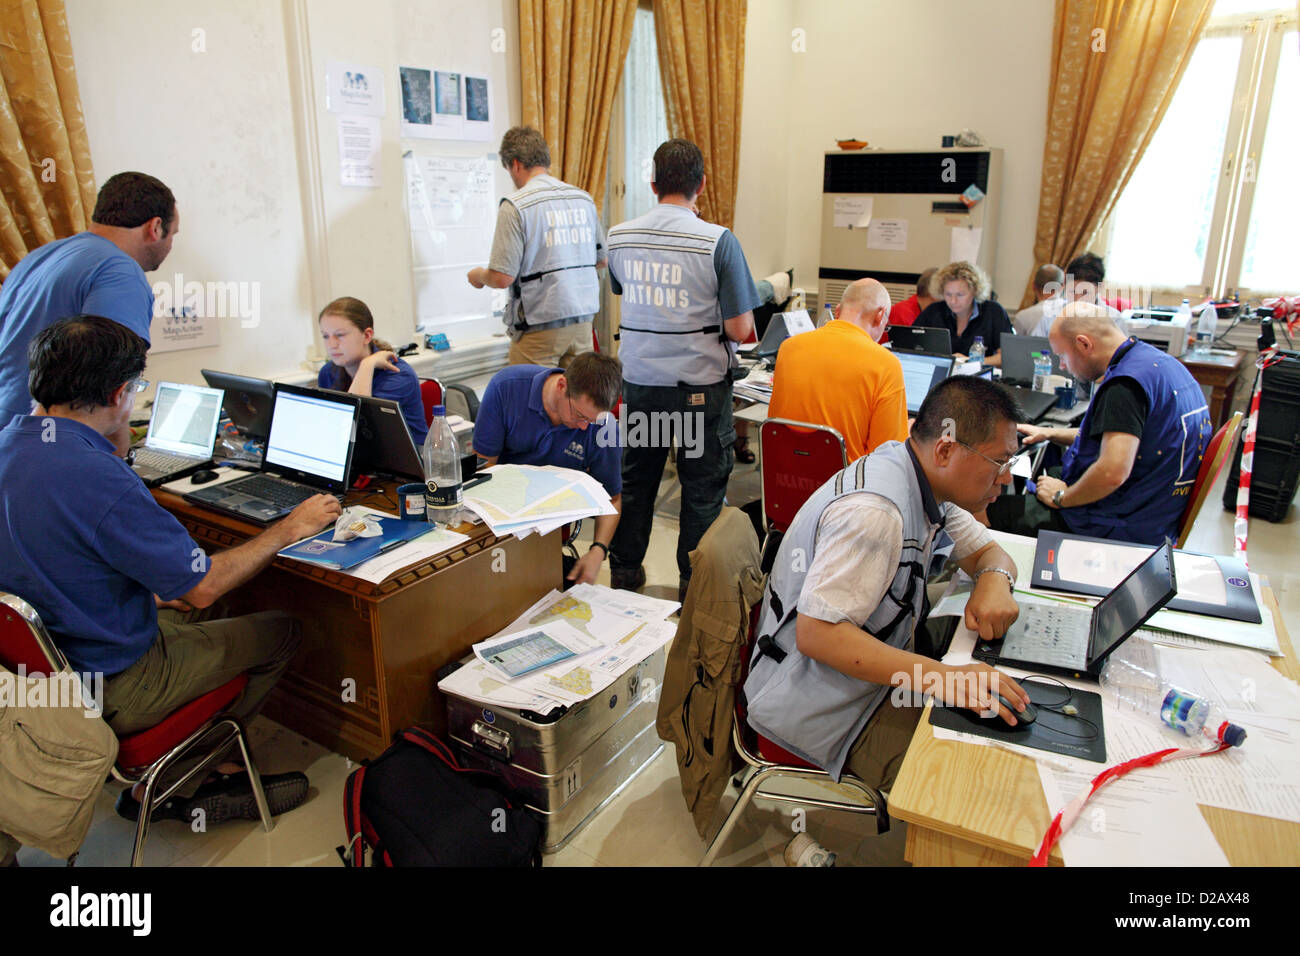 Padang, Indonesia, Coordinating Center for the earthquake area in the Government Palace - Stock Image